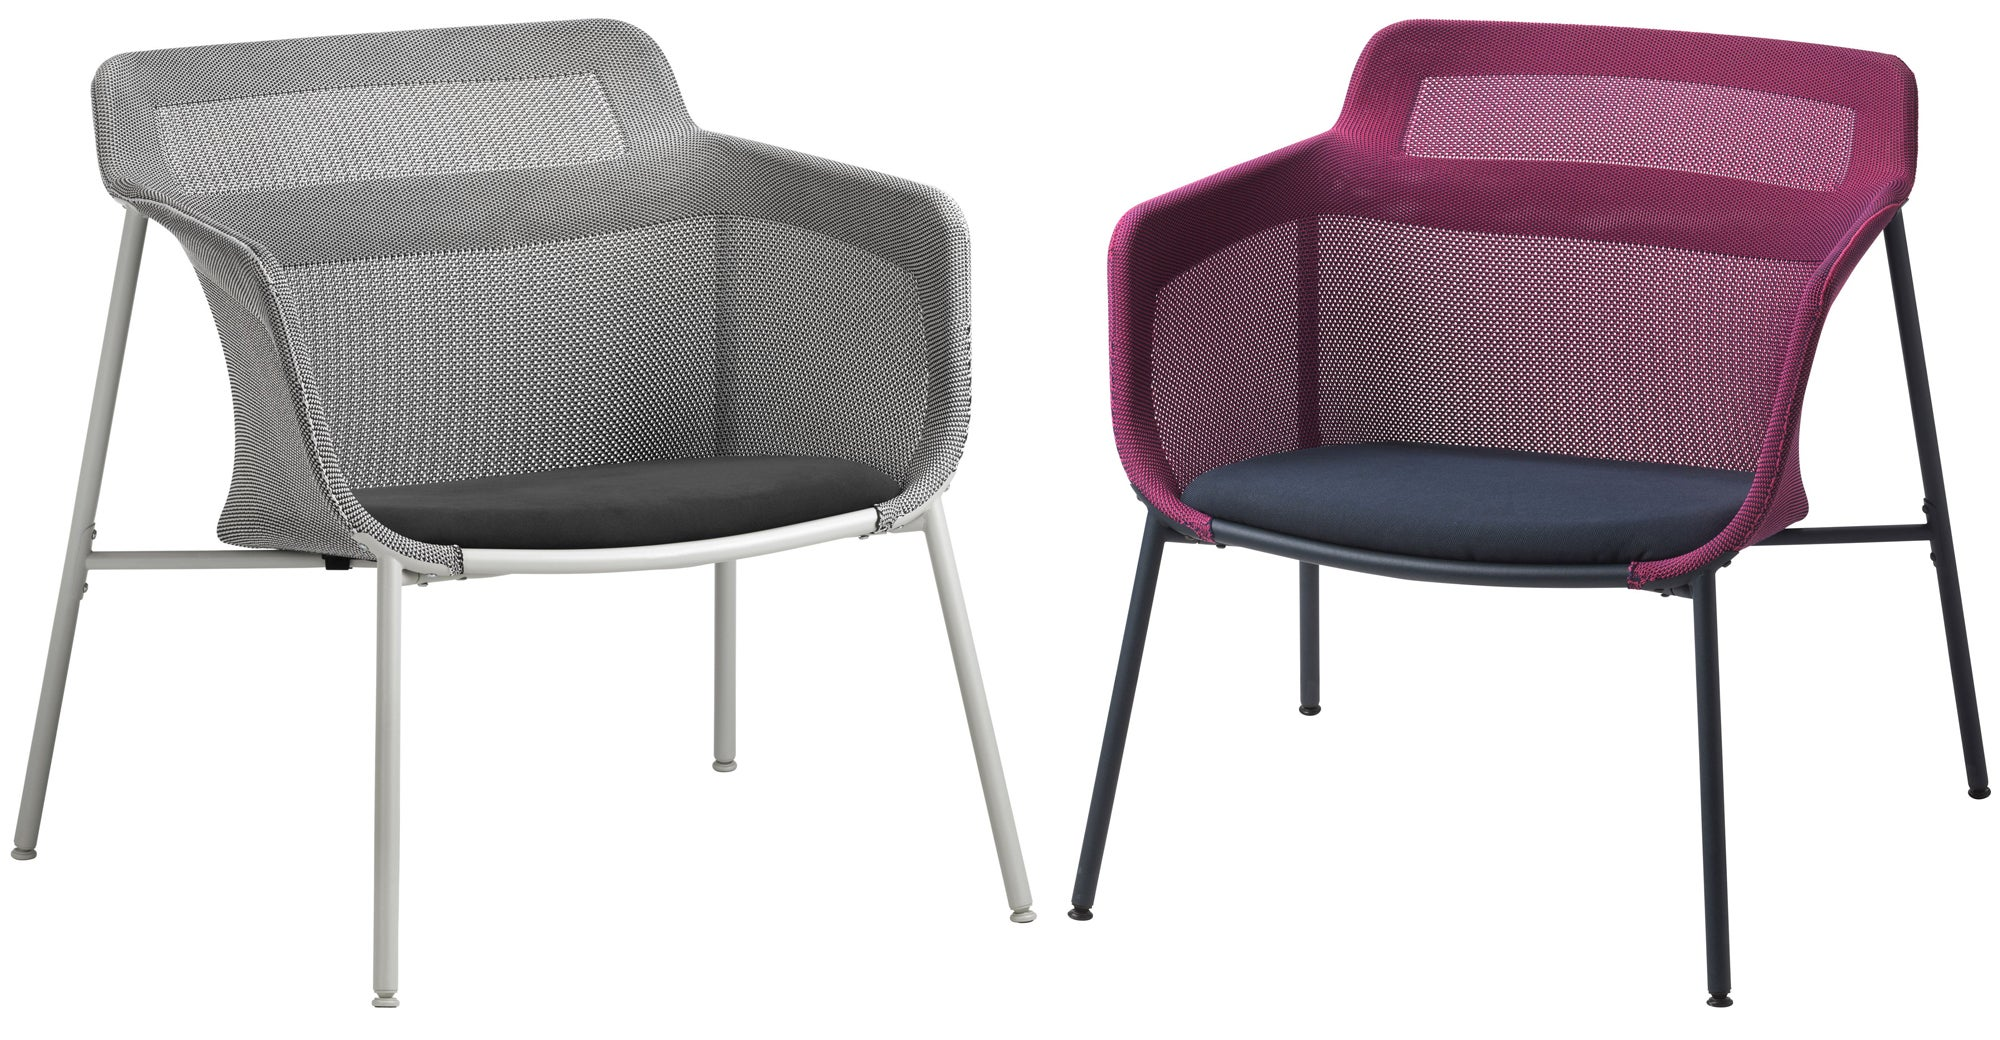 IKEA's Now Making Chairs The Same Way Nike Makes Its Knitted Sneakers